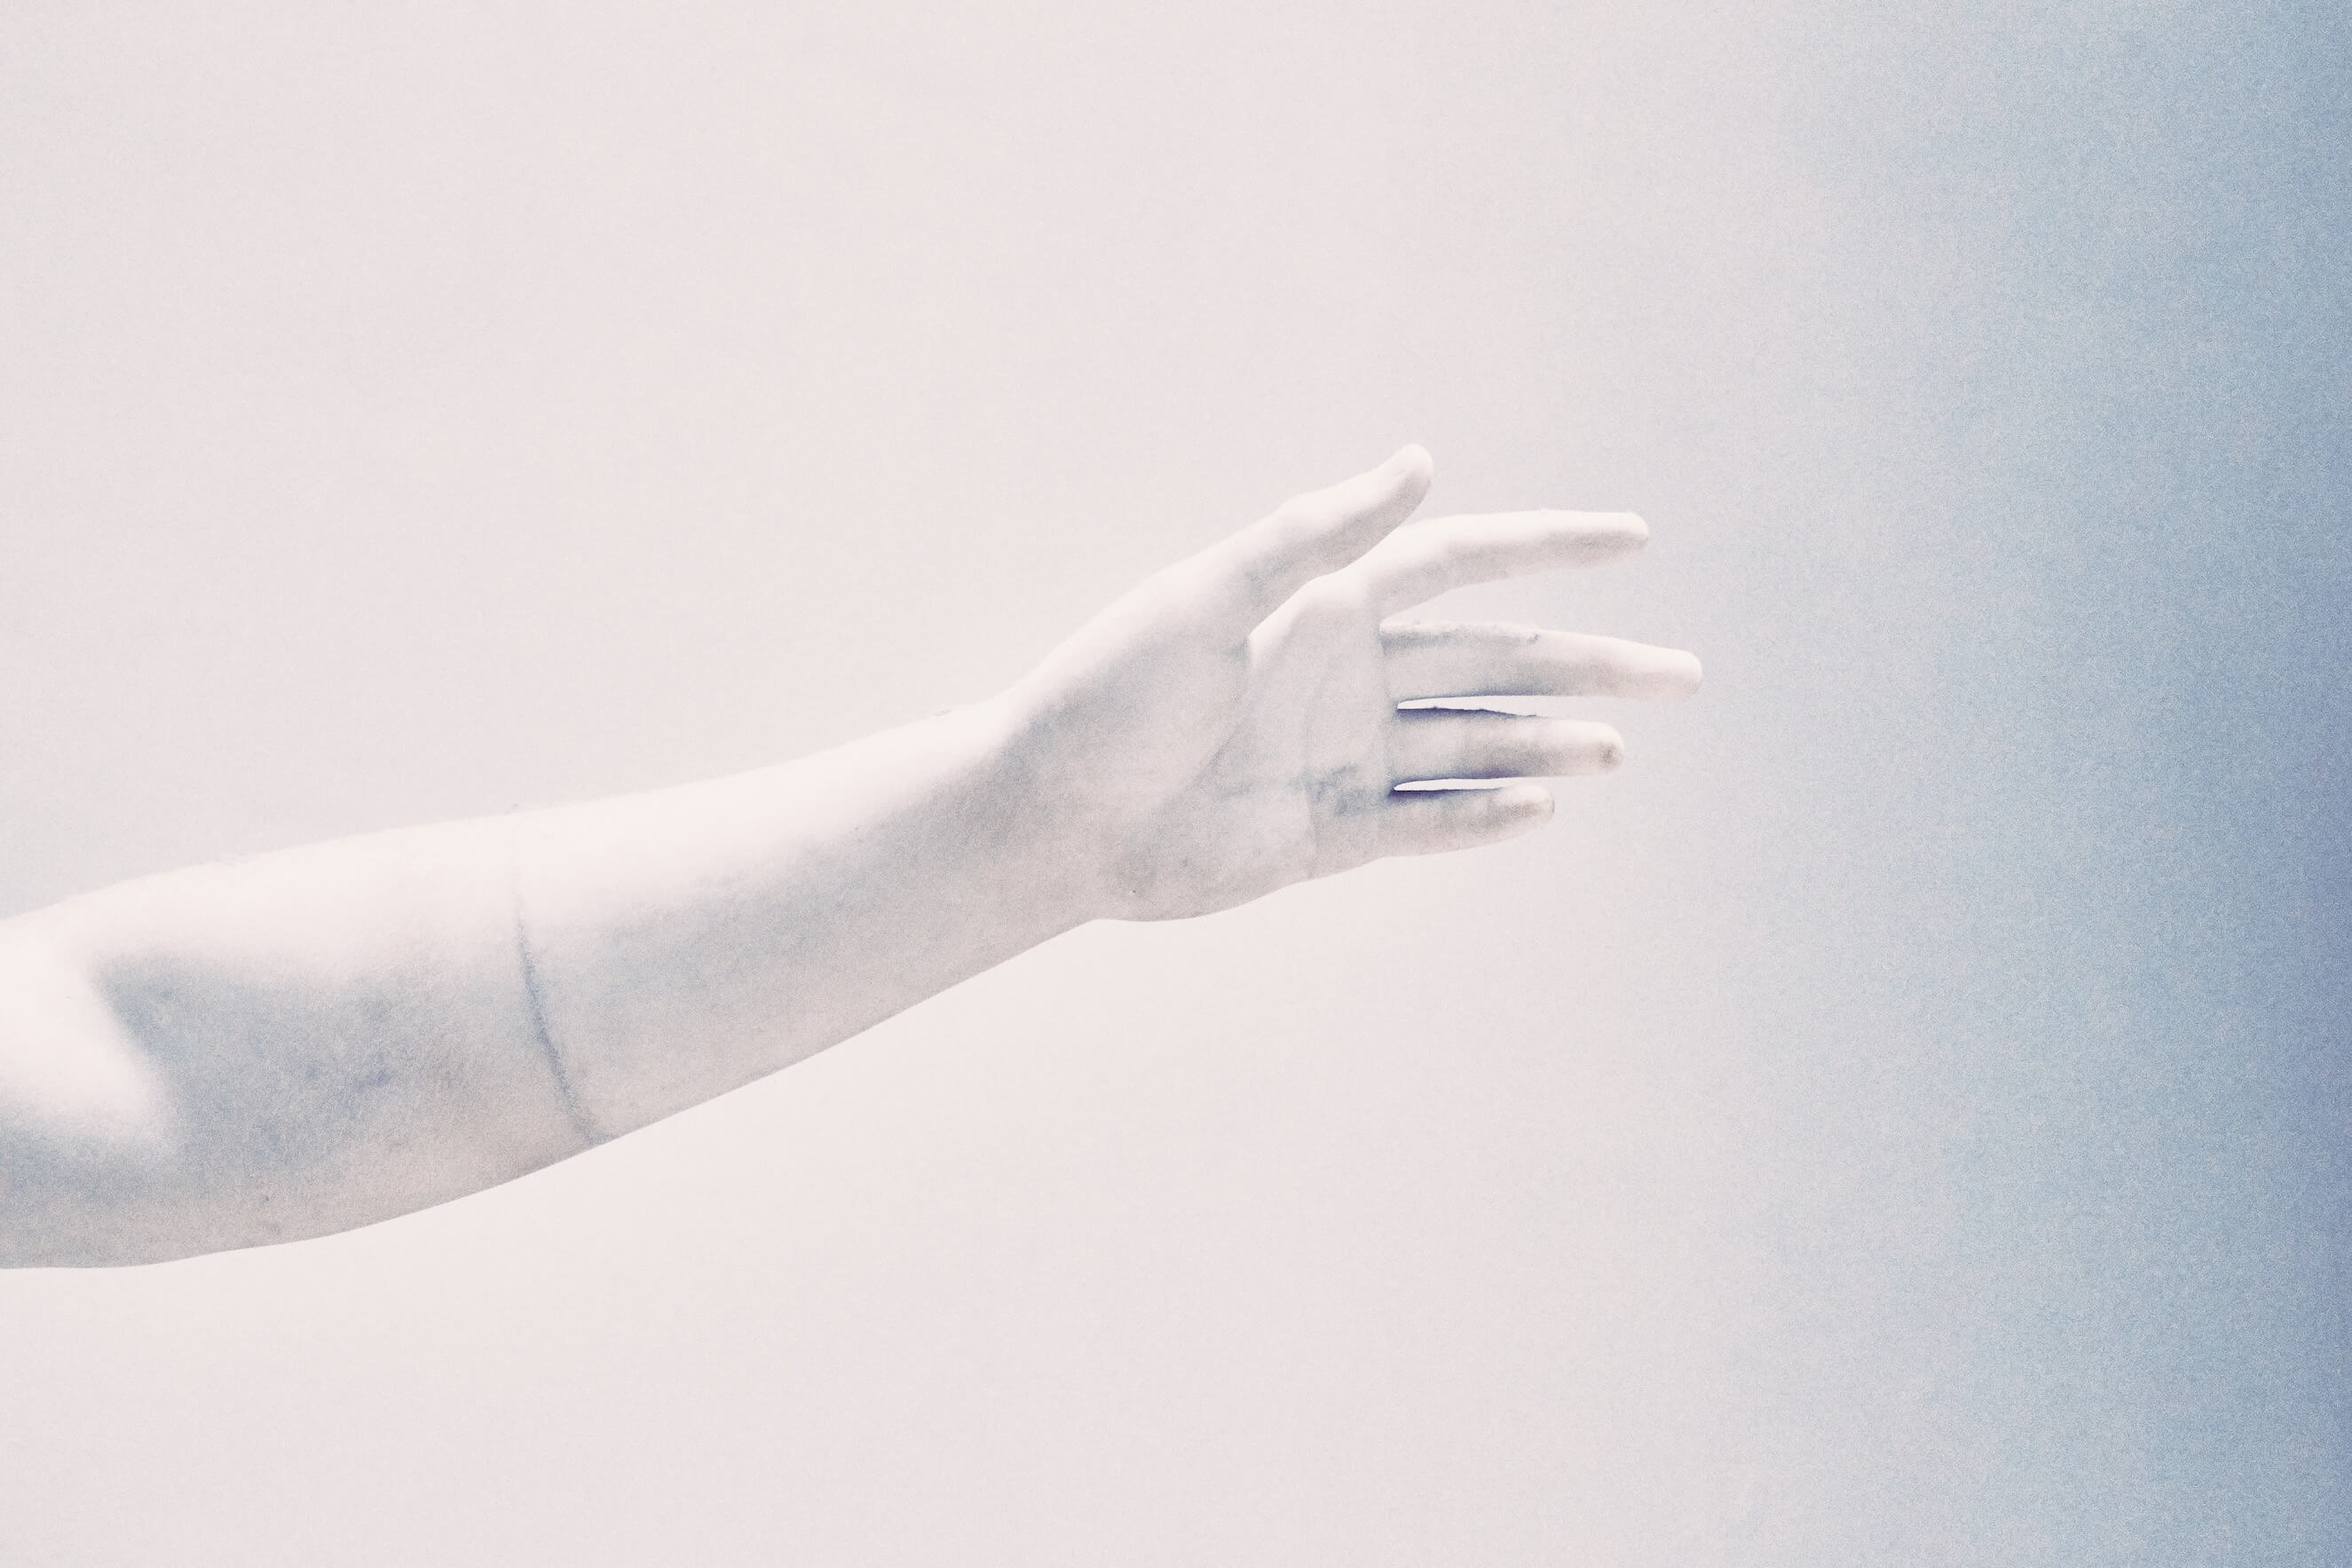 A marble statue's arm outreached on a blank background